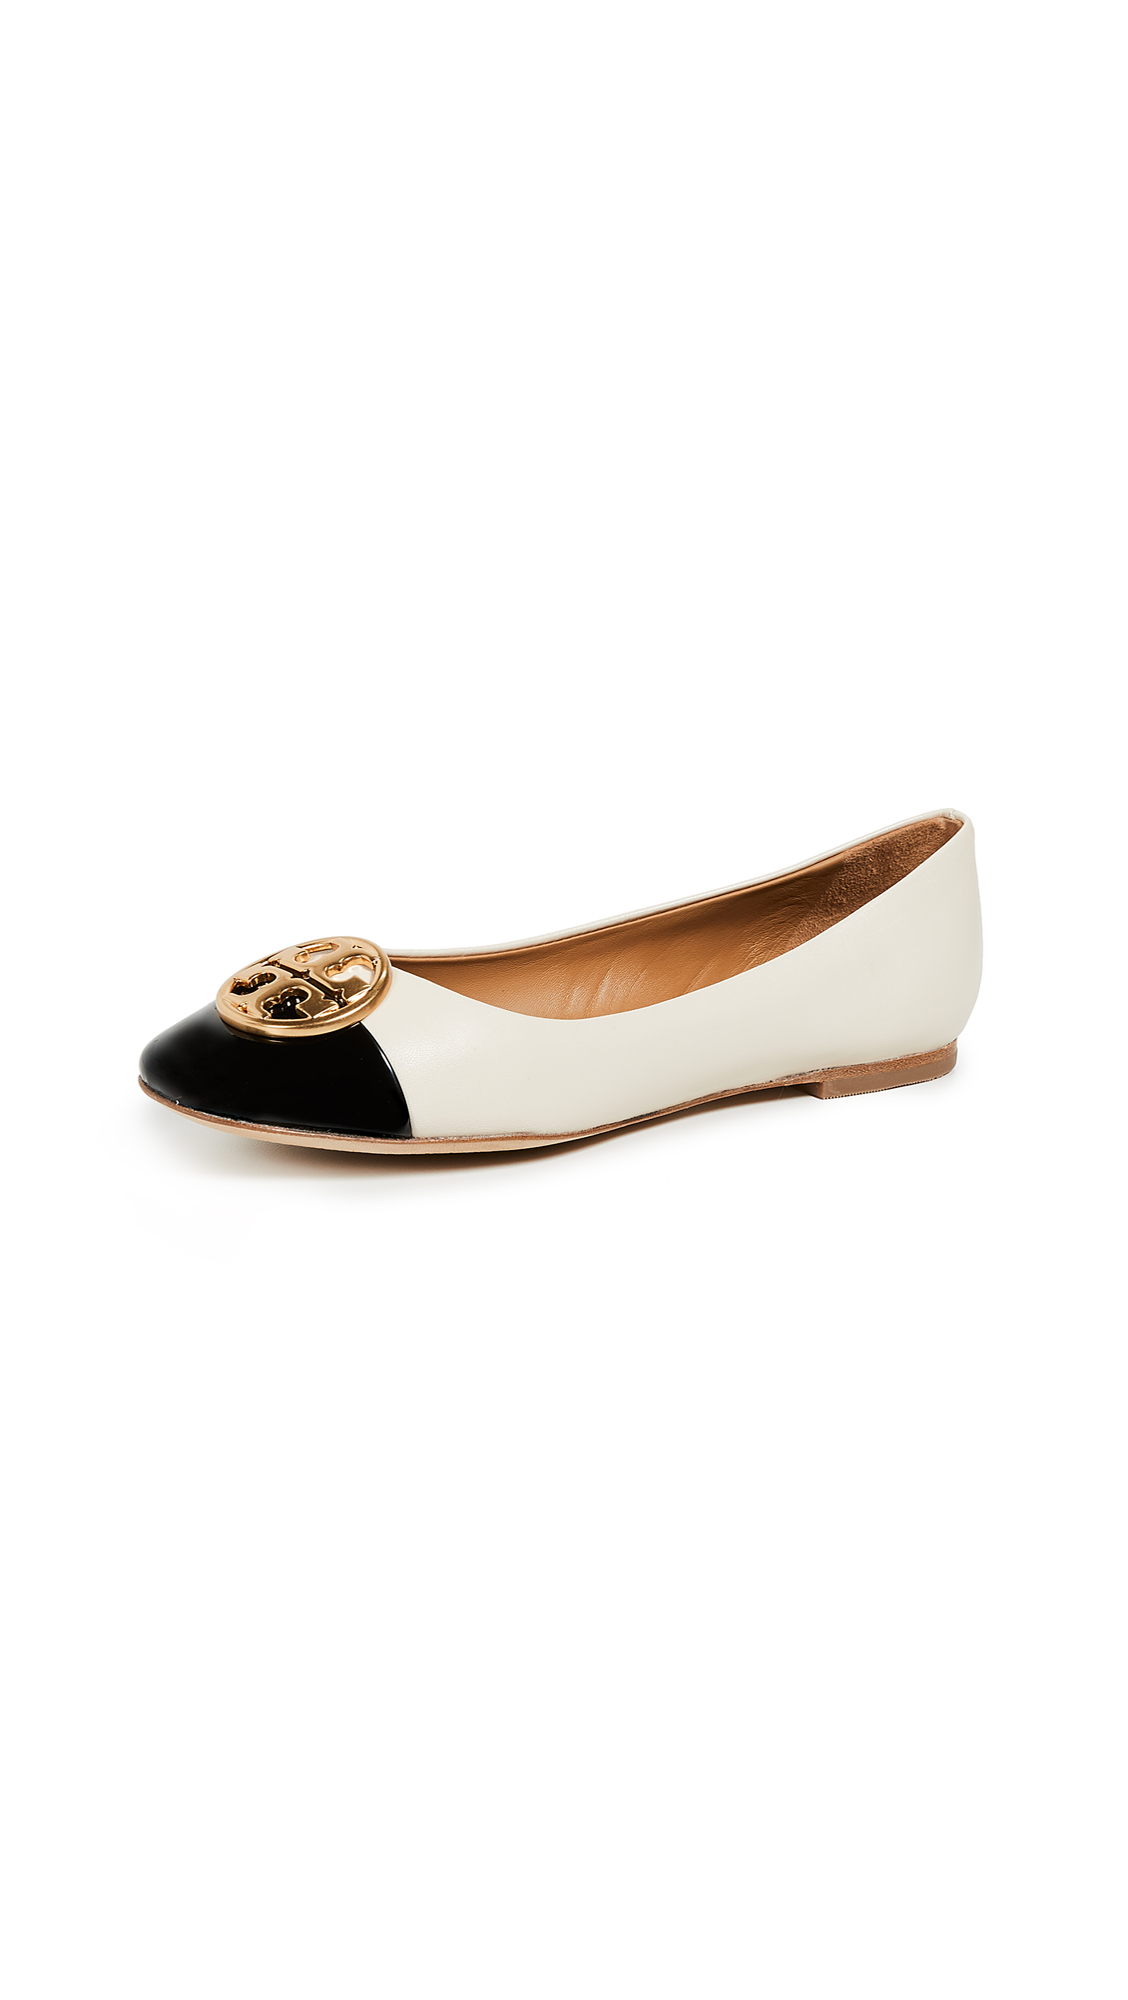 Tory Burch Chelsea Cap Toe Ballet Flats - New Cream/Perfect Black